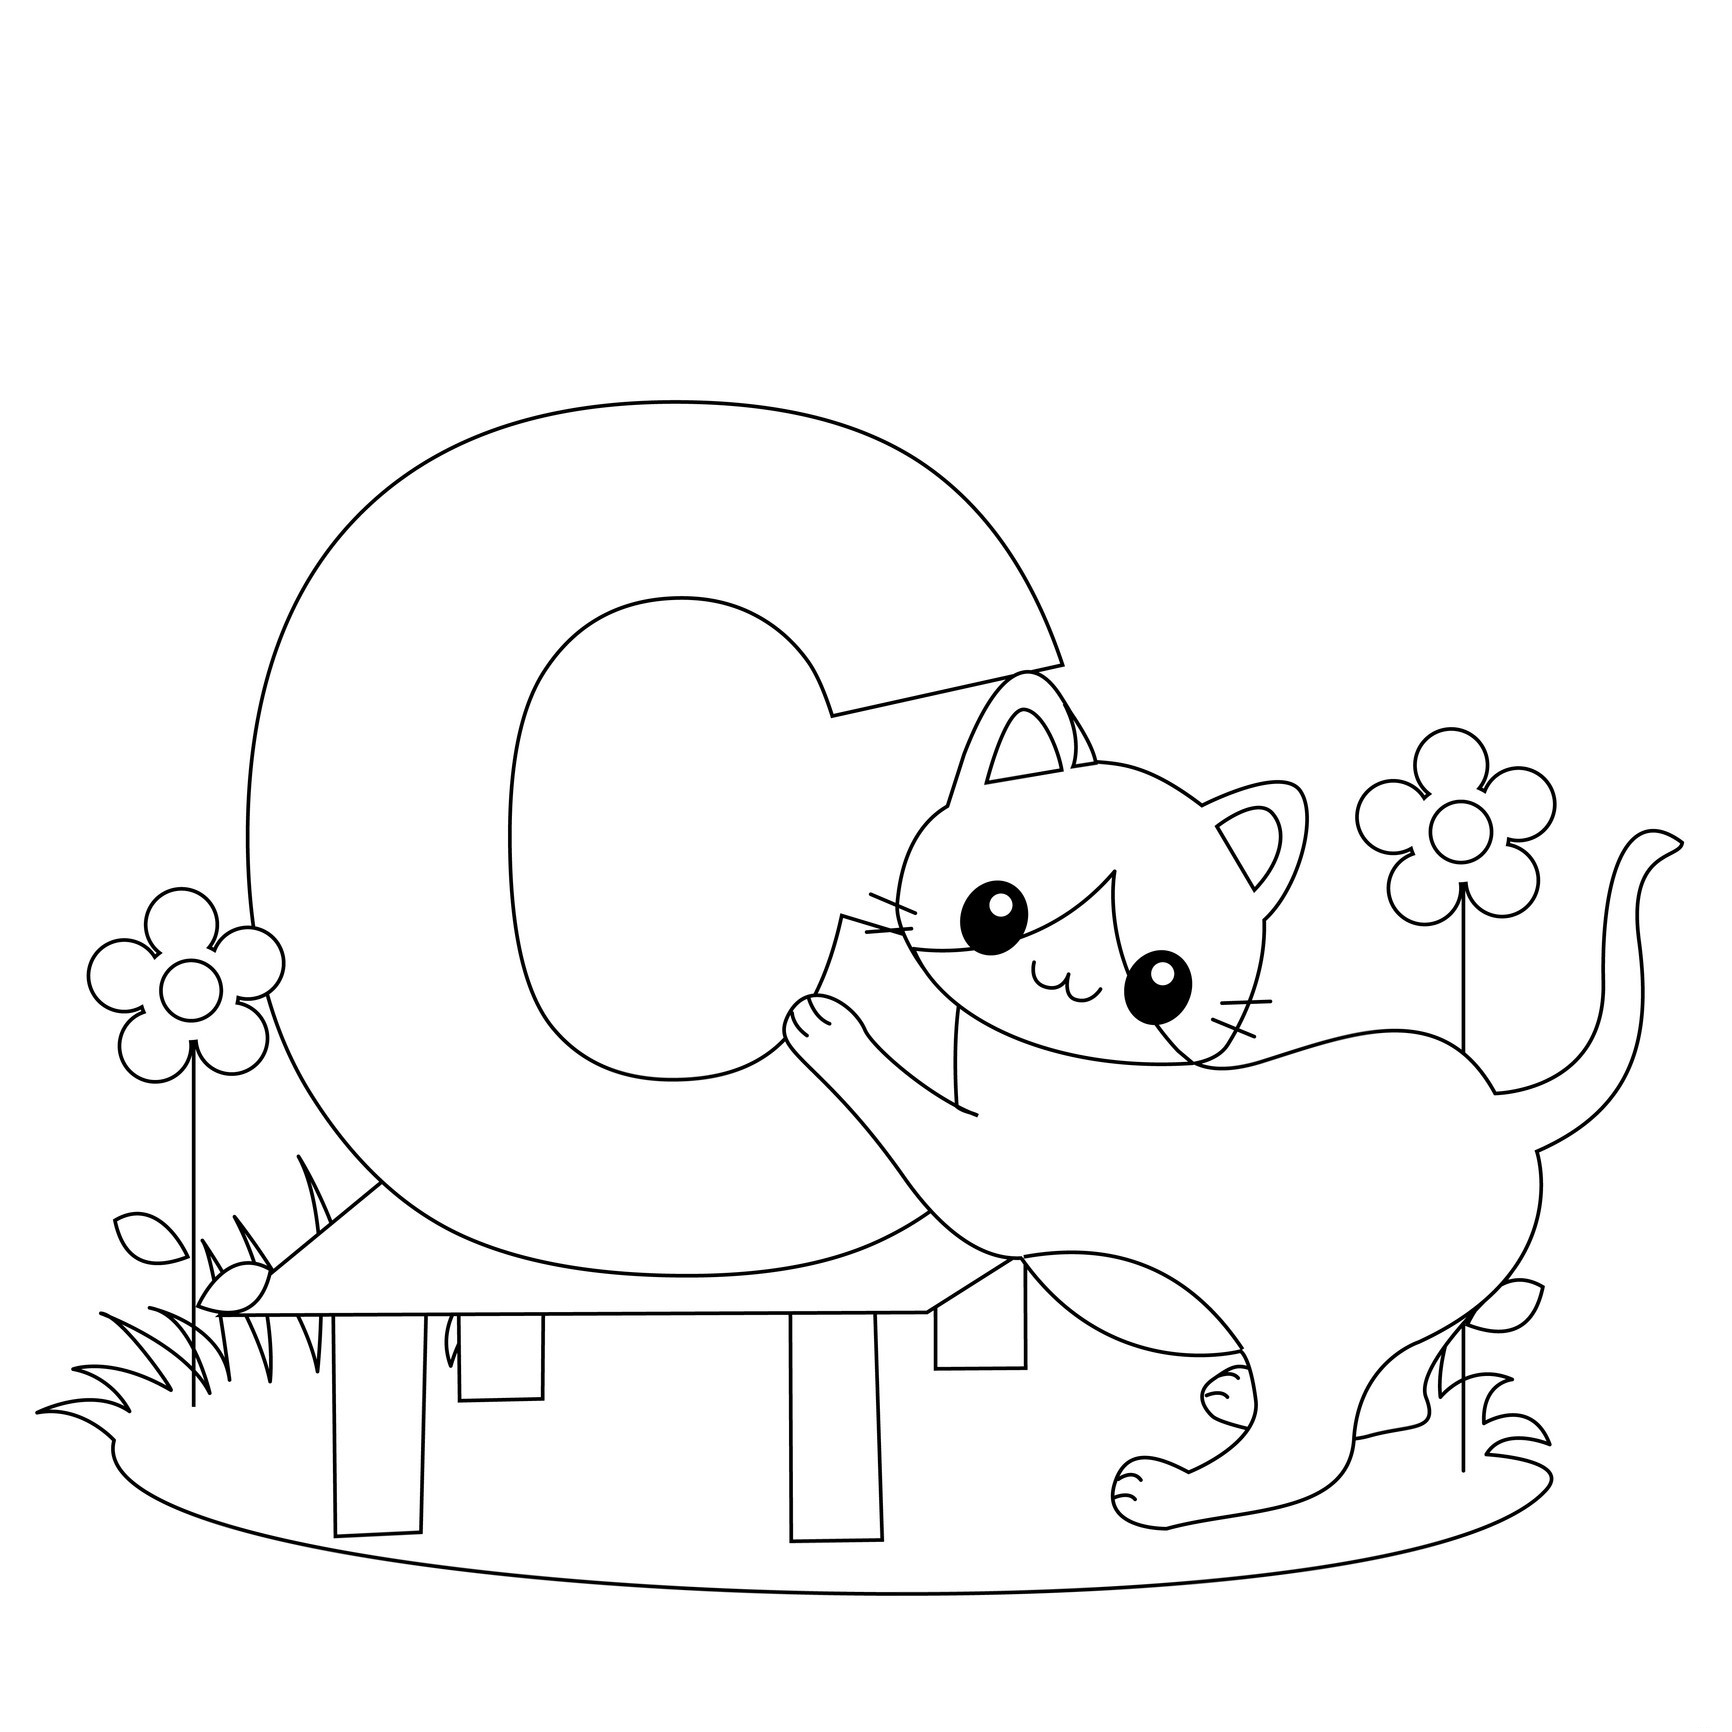 Free printable alphabet coloring pages for kids best for Coloring pages for the letter c